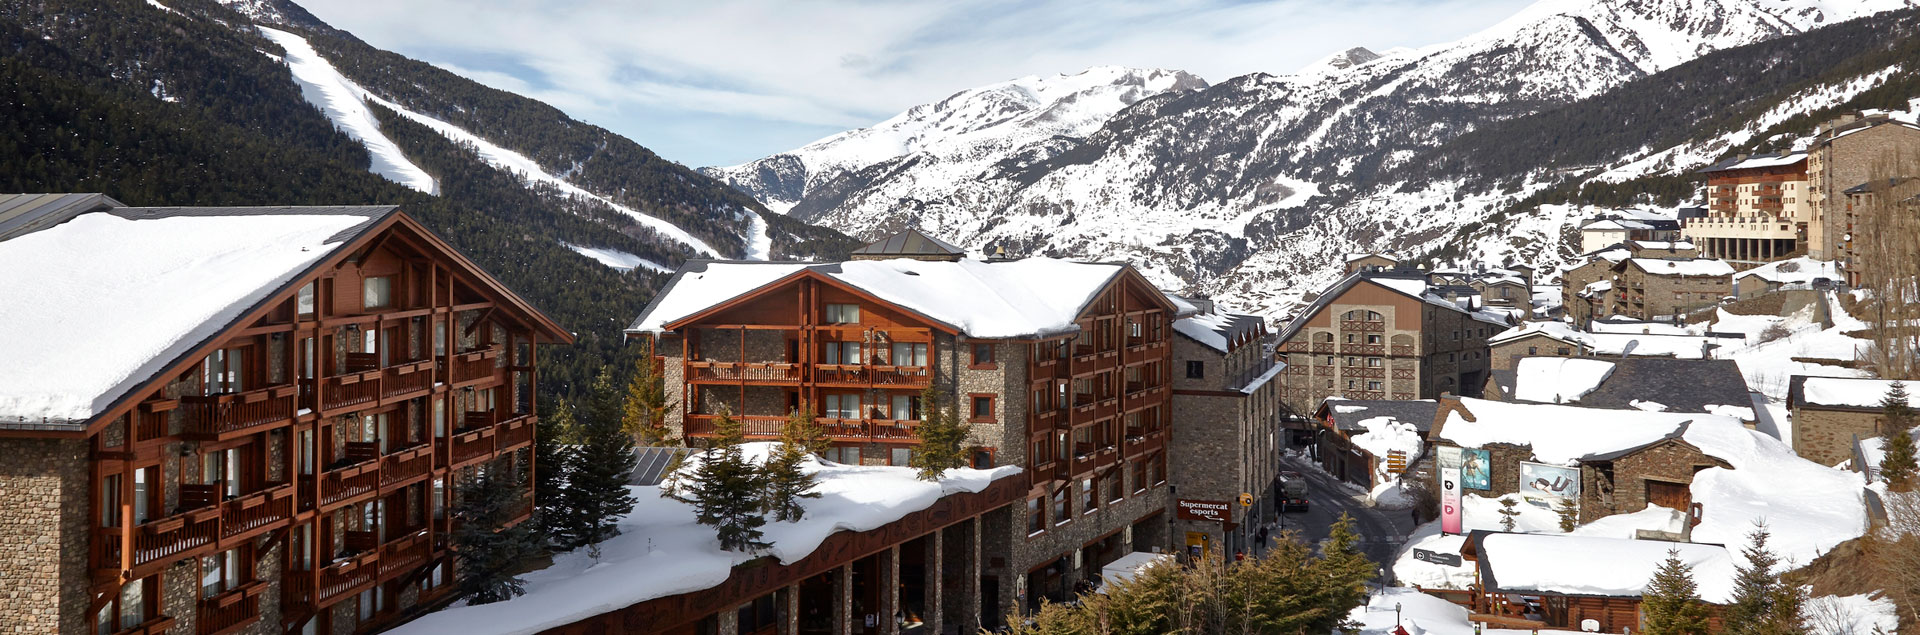 Sport Hotel Village is located near the Grandvalira gondola